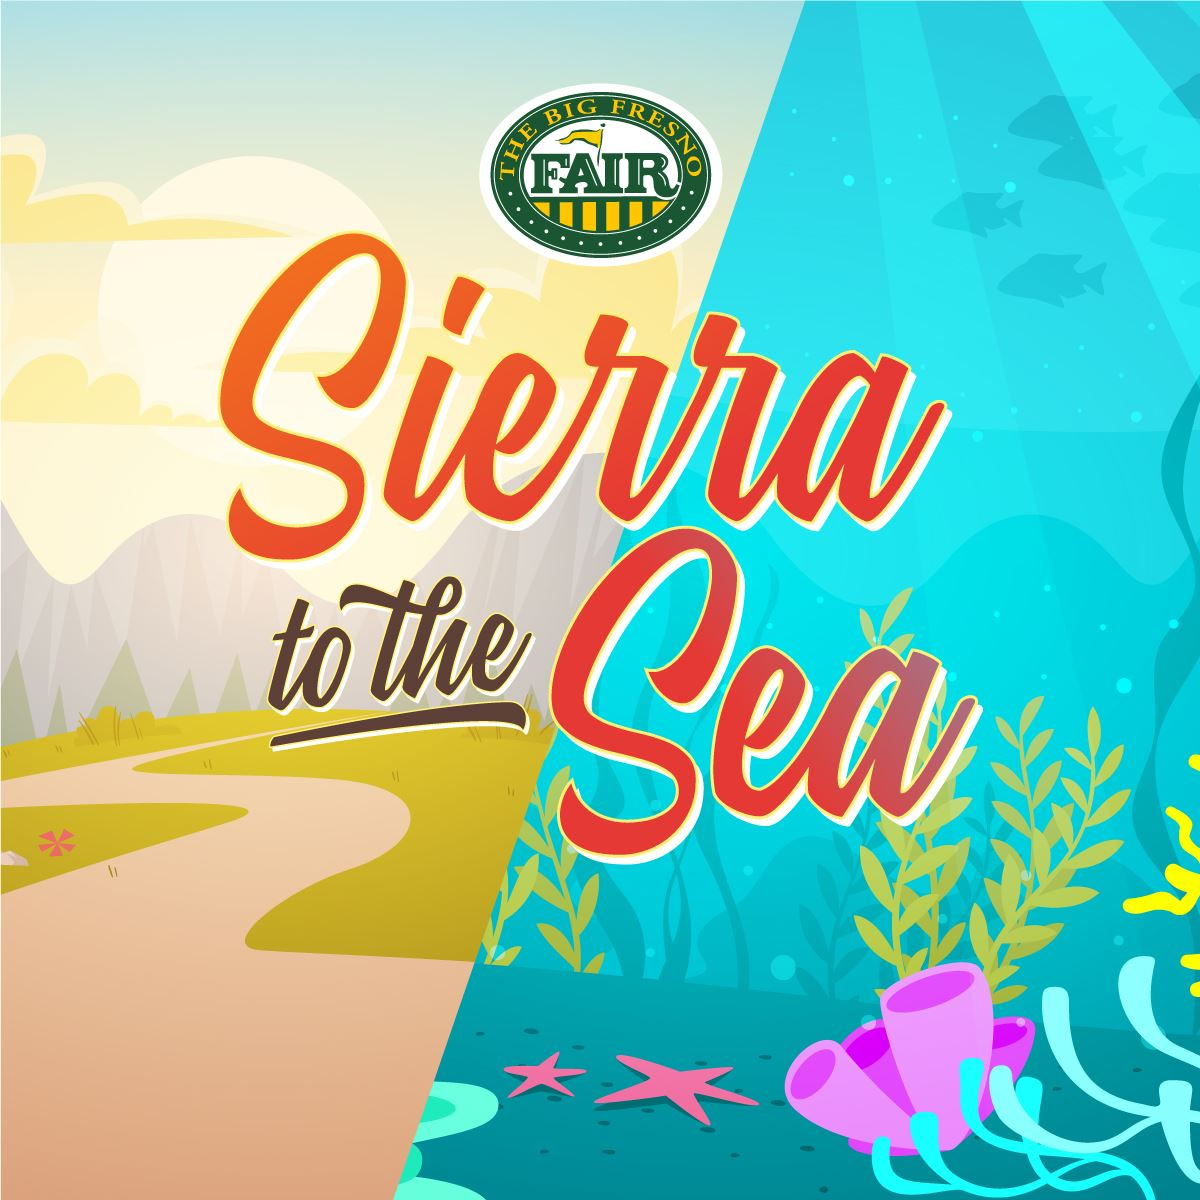 Sierra to the Sea